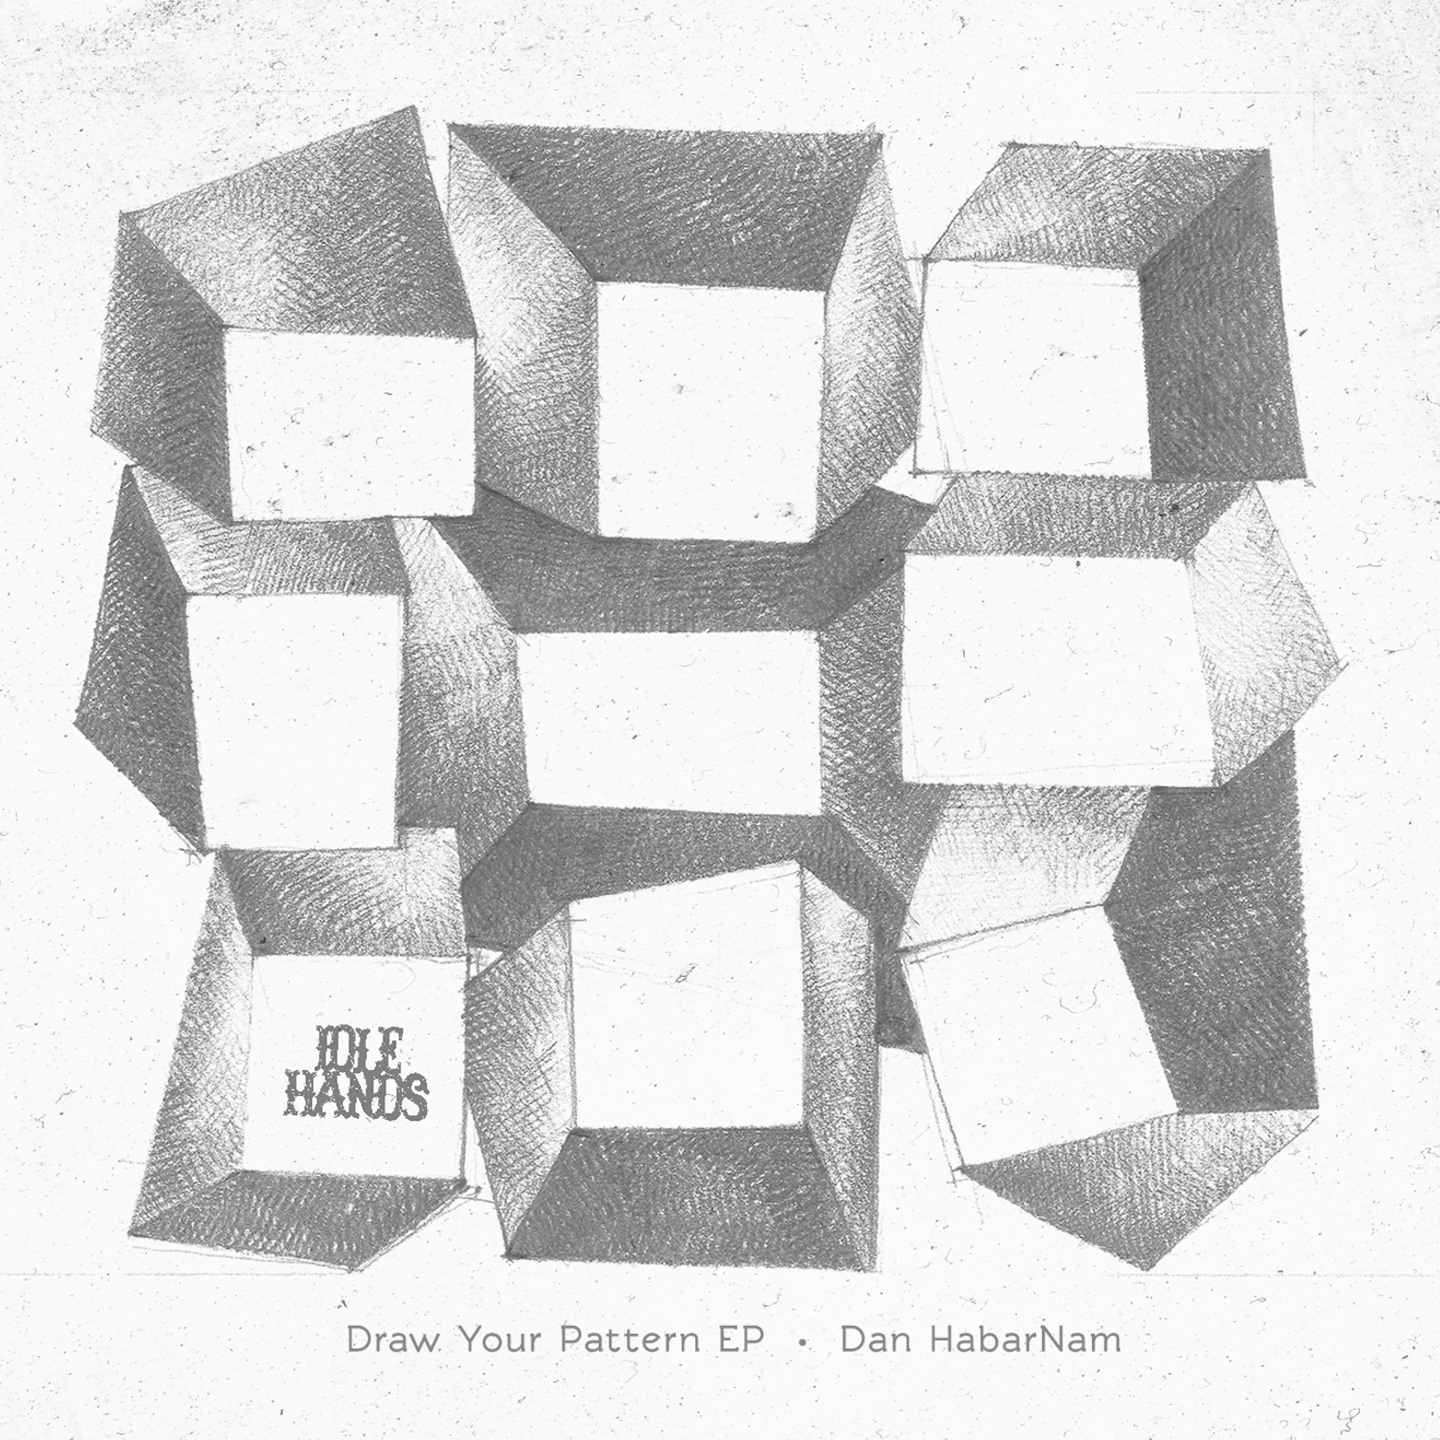 Dan HabarNam - Draw Your Pattern EP